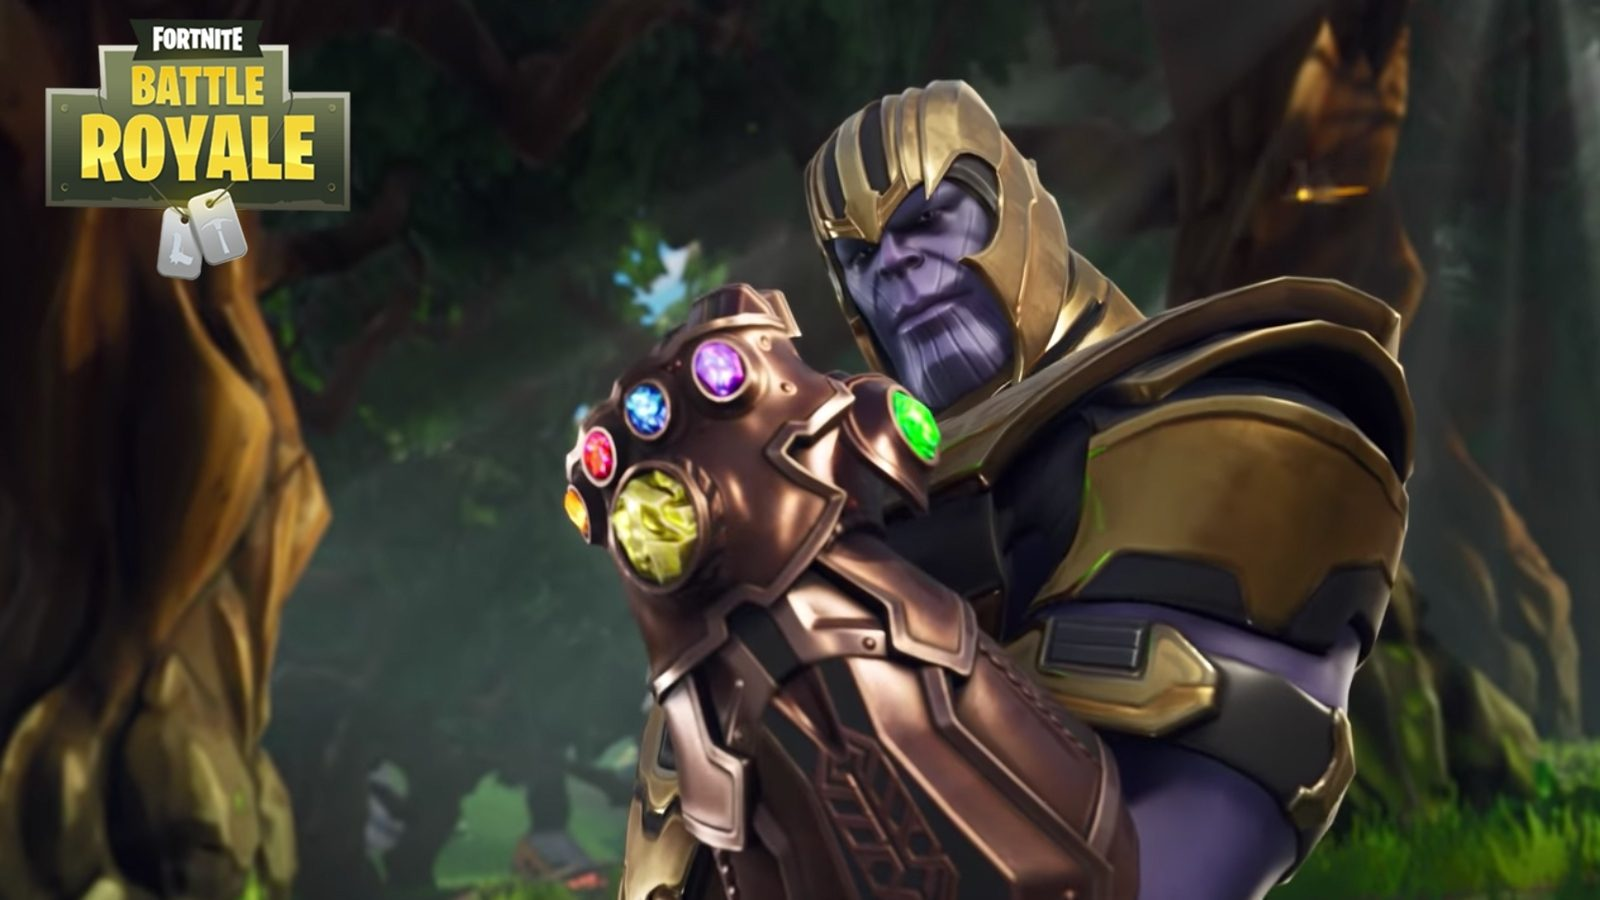 All Changes Announced to Thanos in Fortnite X Avengers Limited 1600x900